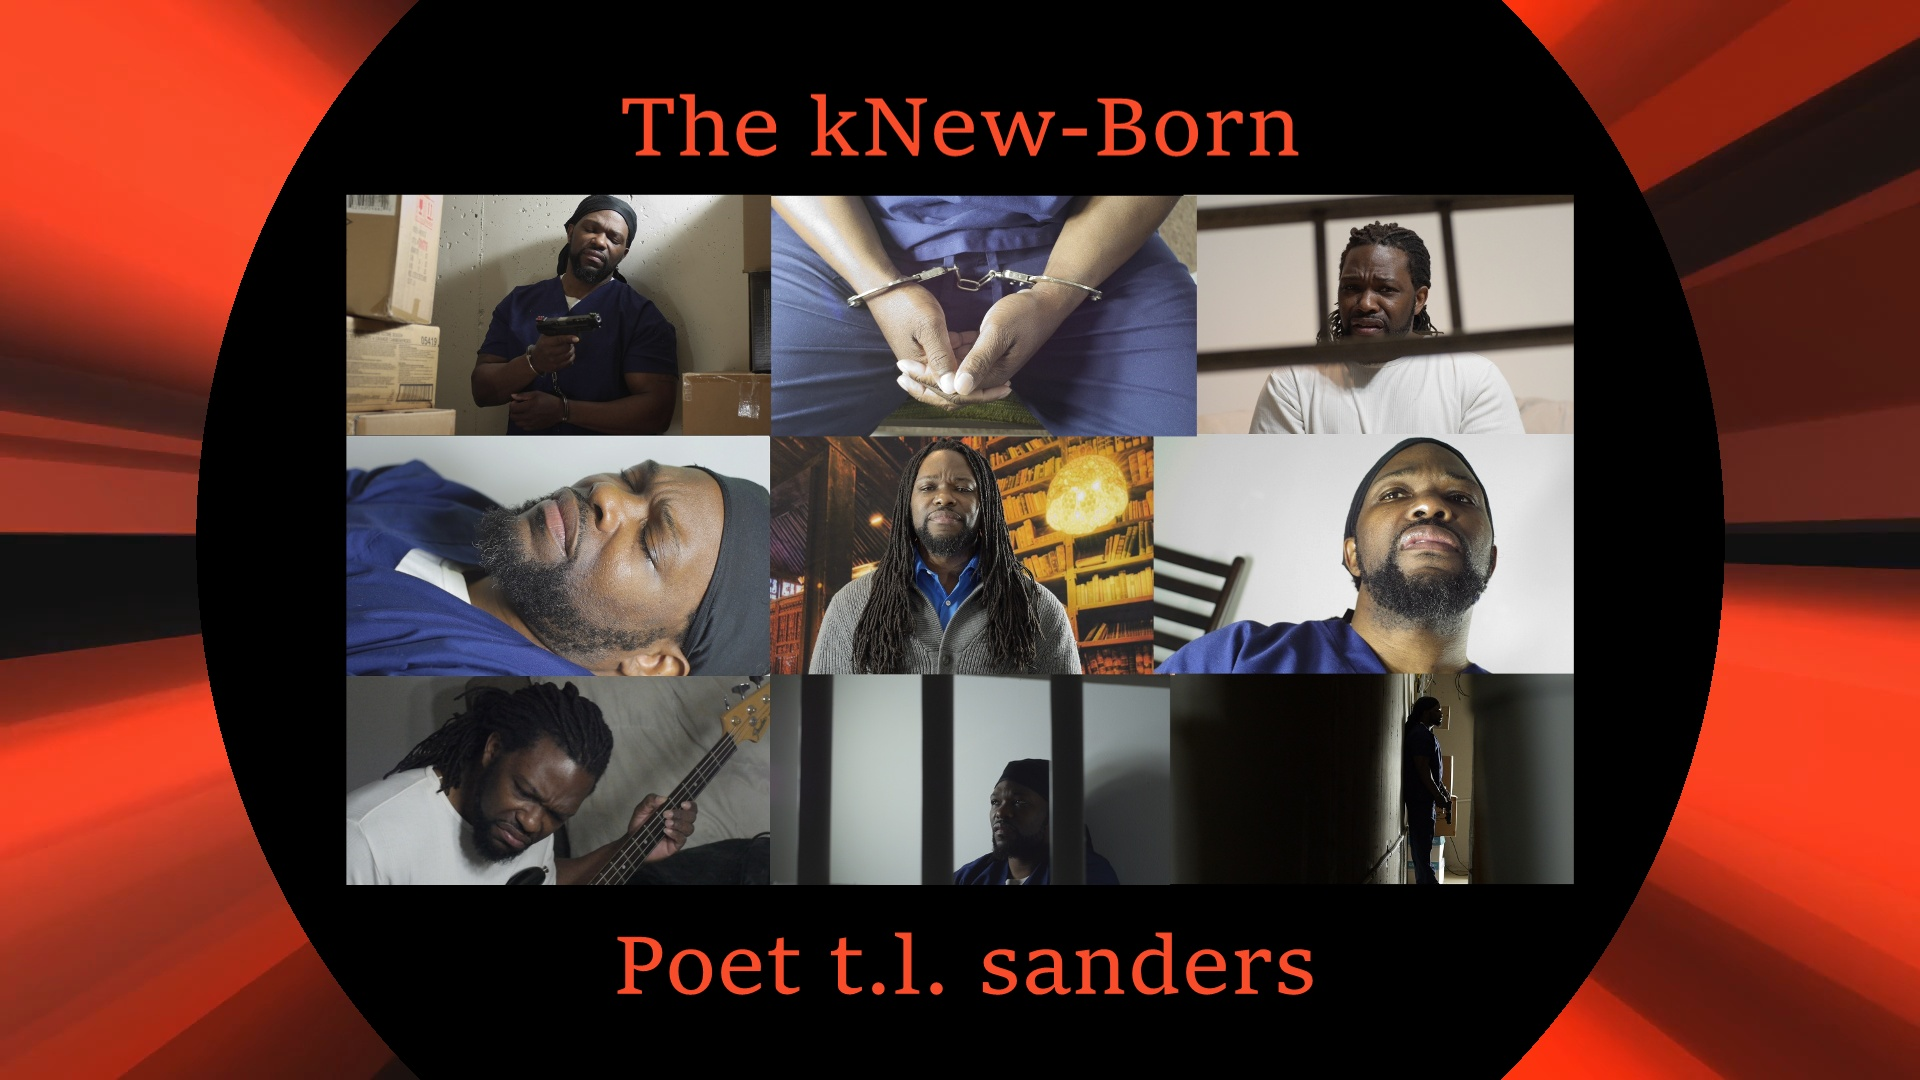 kNew-Born from Poet t.l. sanders